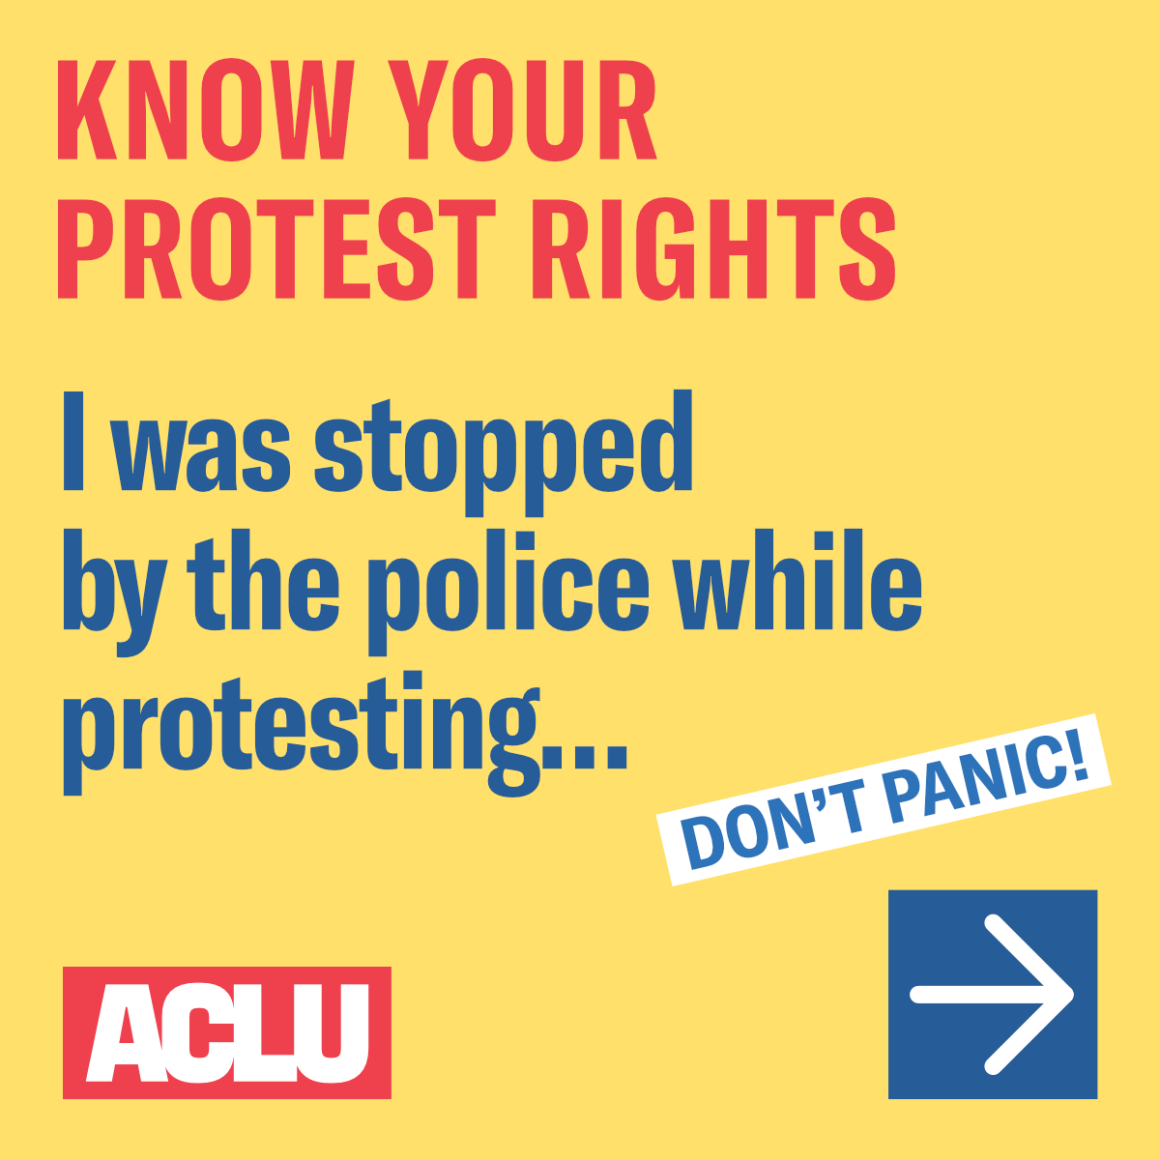 I was stopped by the police while protesting